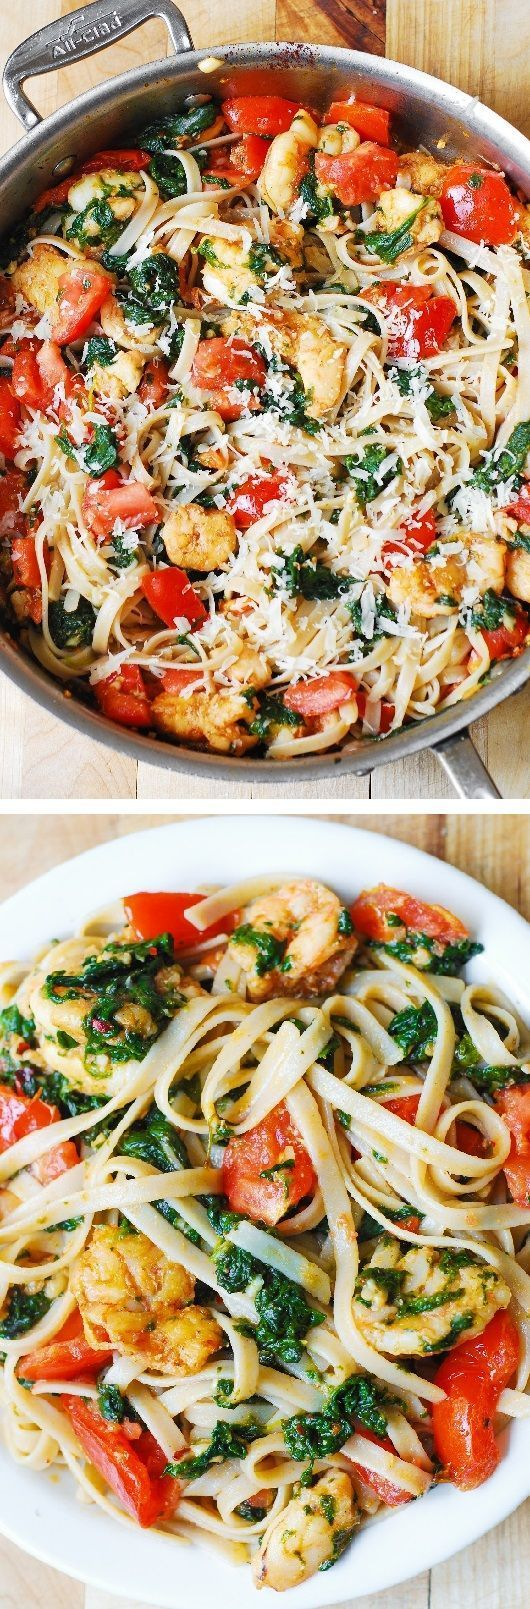 Shrimp pasta with fresh tomatoes and spinach in a garlic butter sauce   Nosh-up